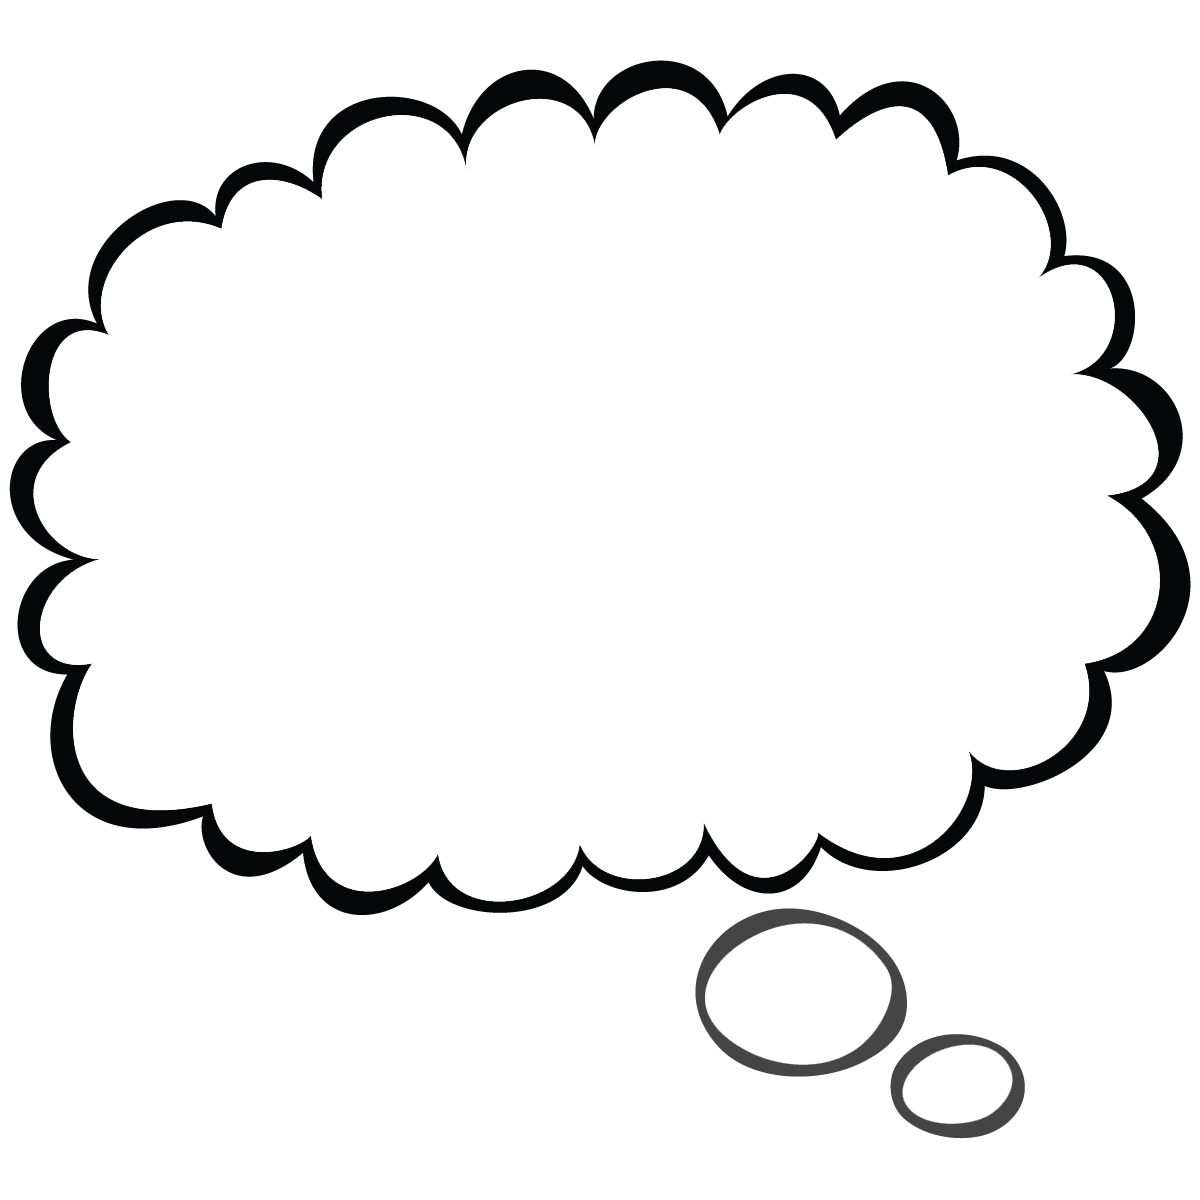 Free Word Bubble Png, Download Free Clip Art, Free Clip